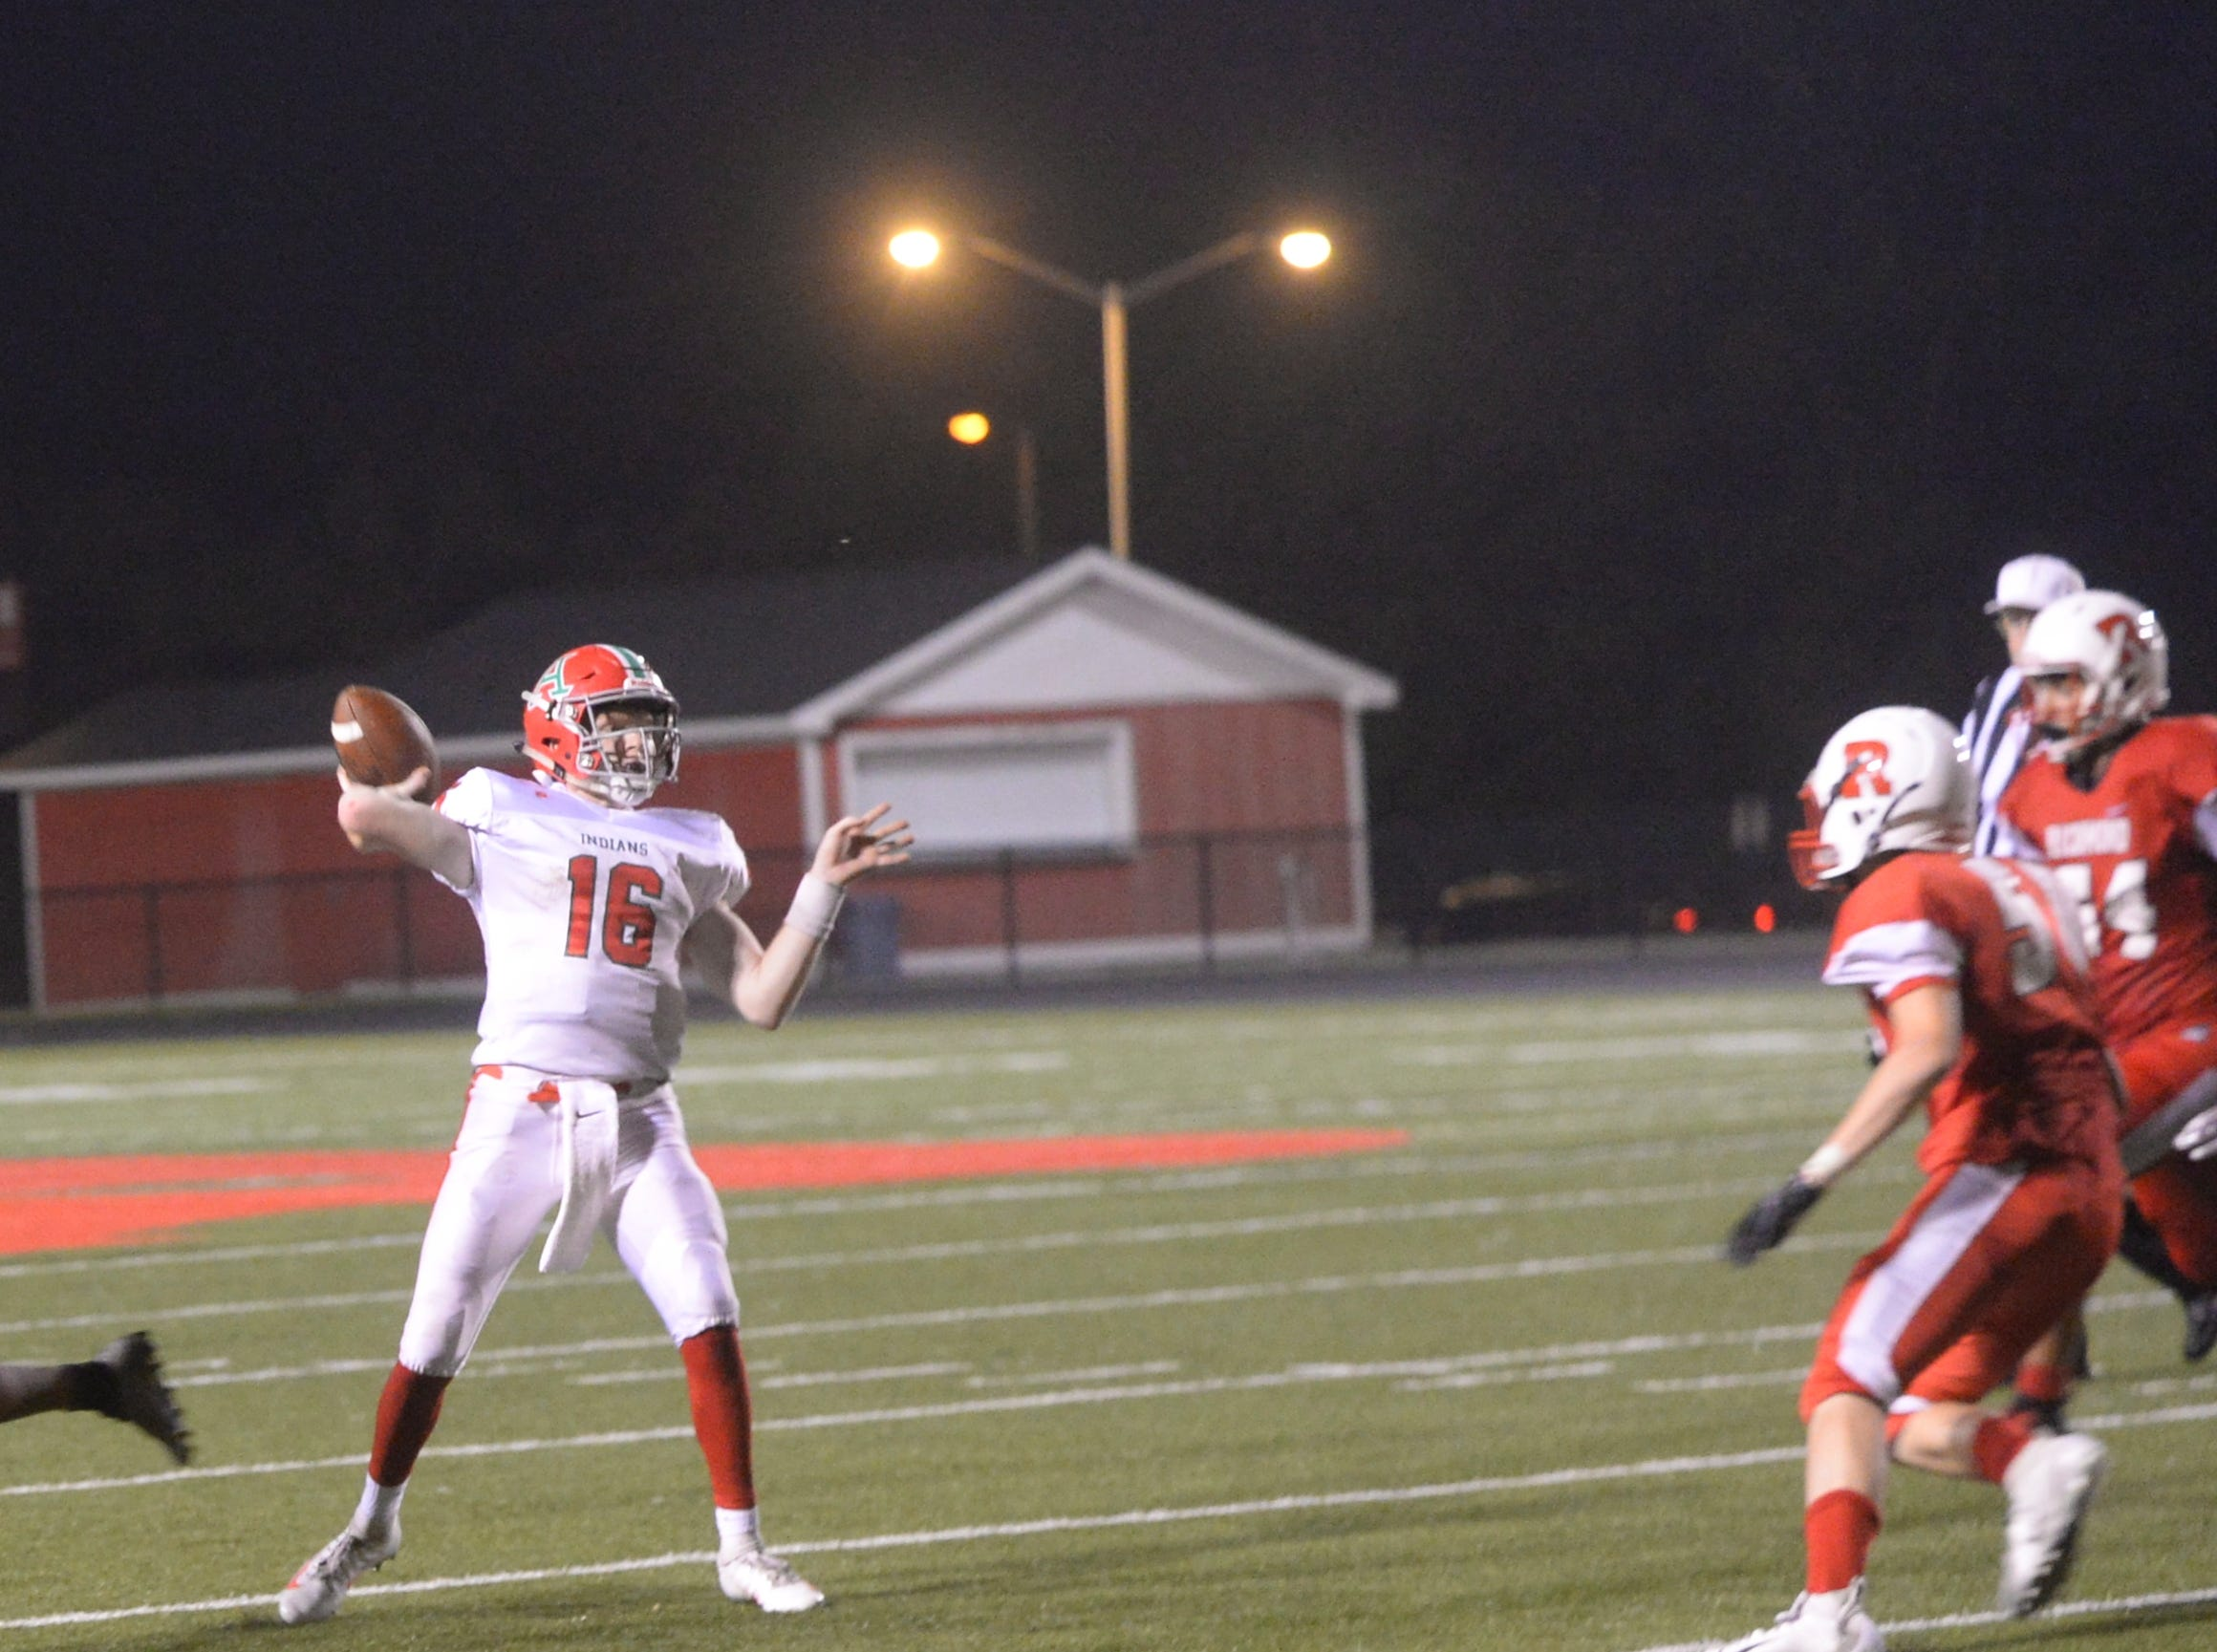 Anderson's Xander Stokes (16) throws a pass during the Richmond High School football team's  27-26 loss to Anderson Friday, Oct. 5, 2018 at Lyboult Field.